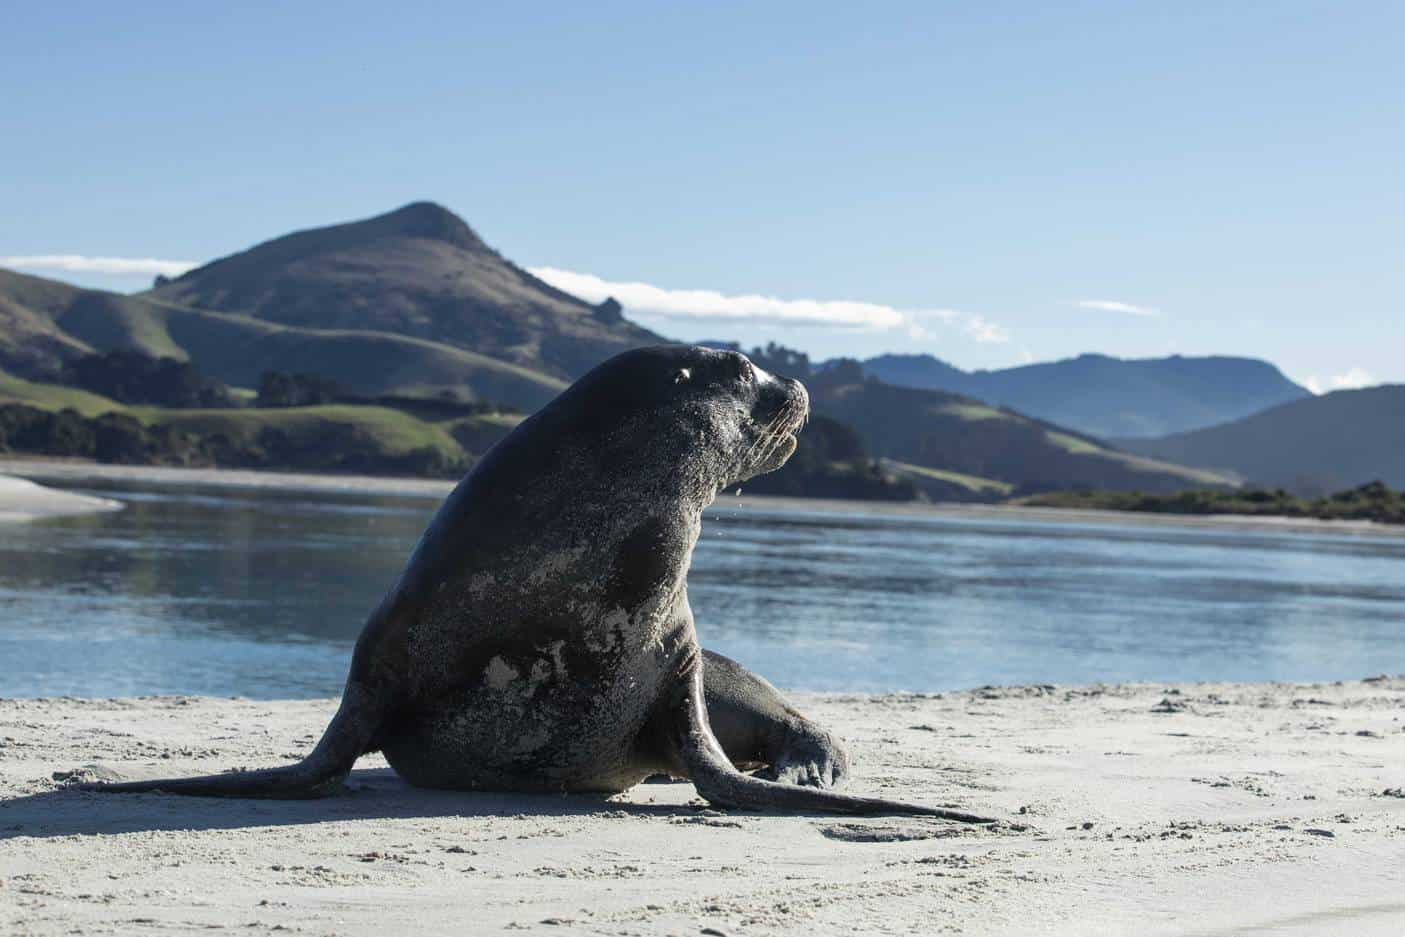 Sea lions and seals visible on secluded beach in Dunedin